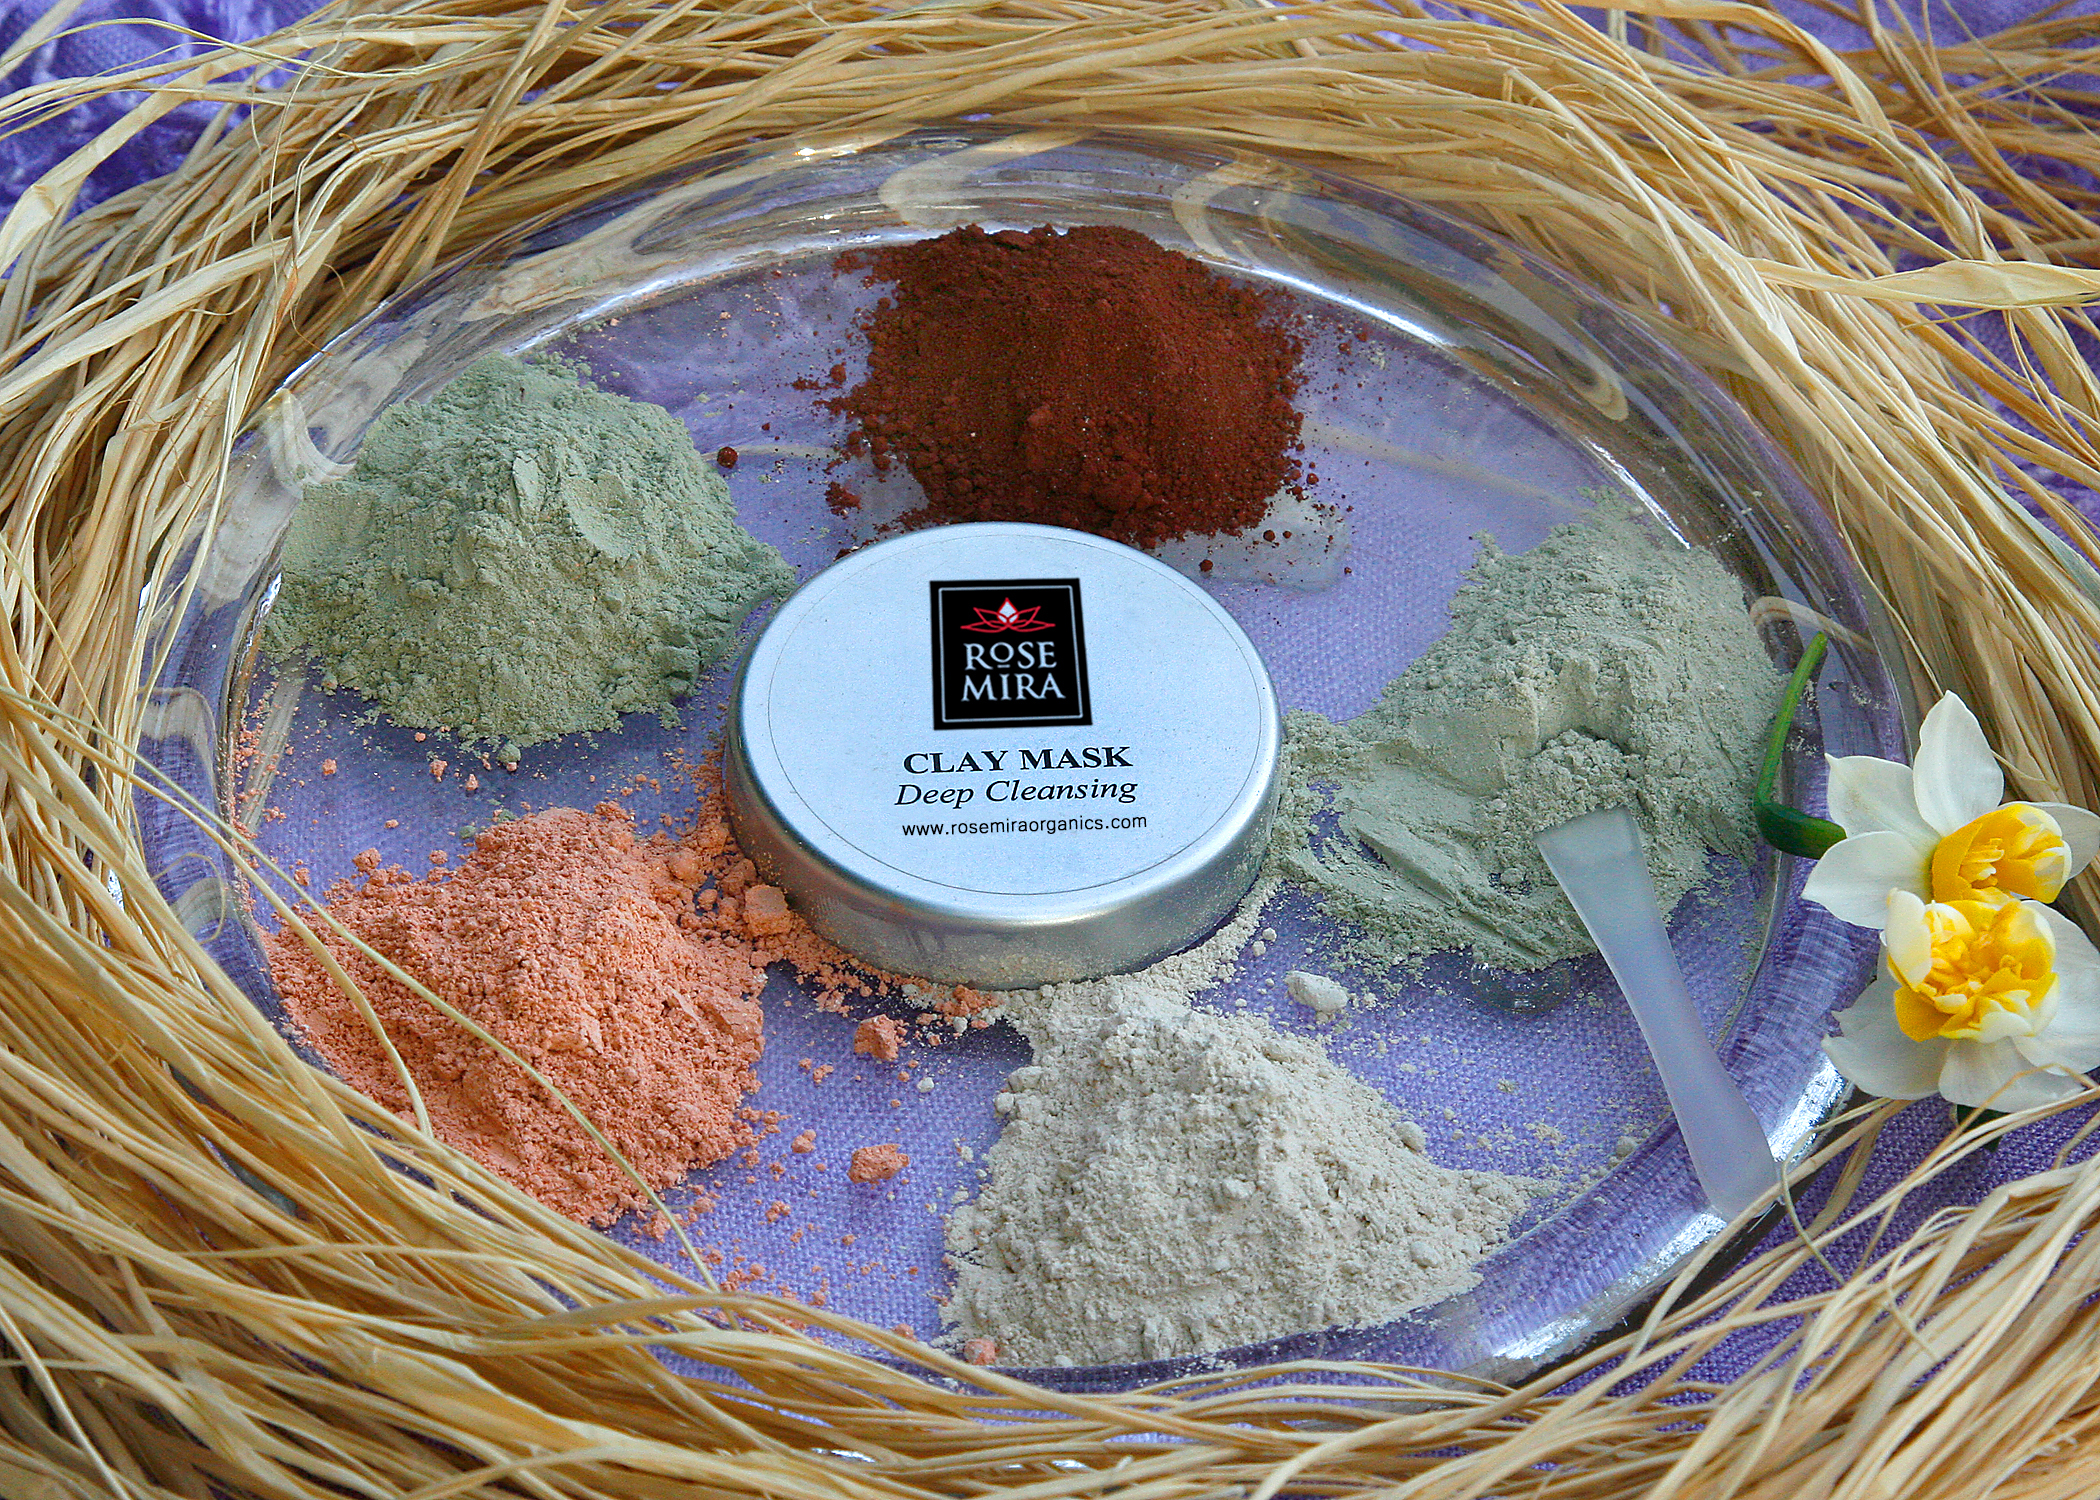 The Rejuvenating properties of Clay